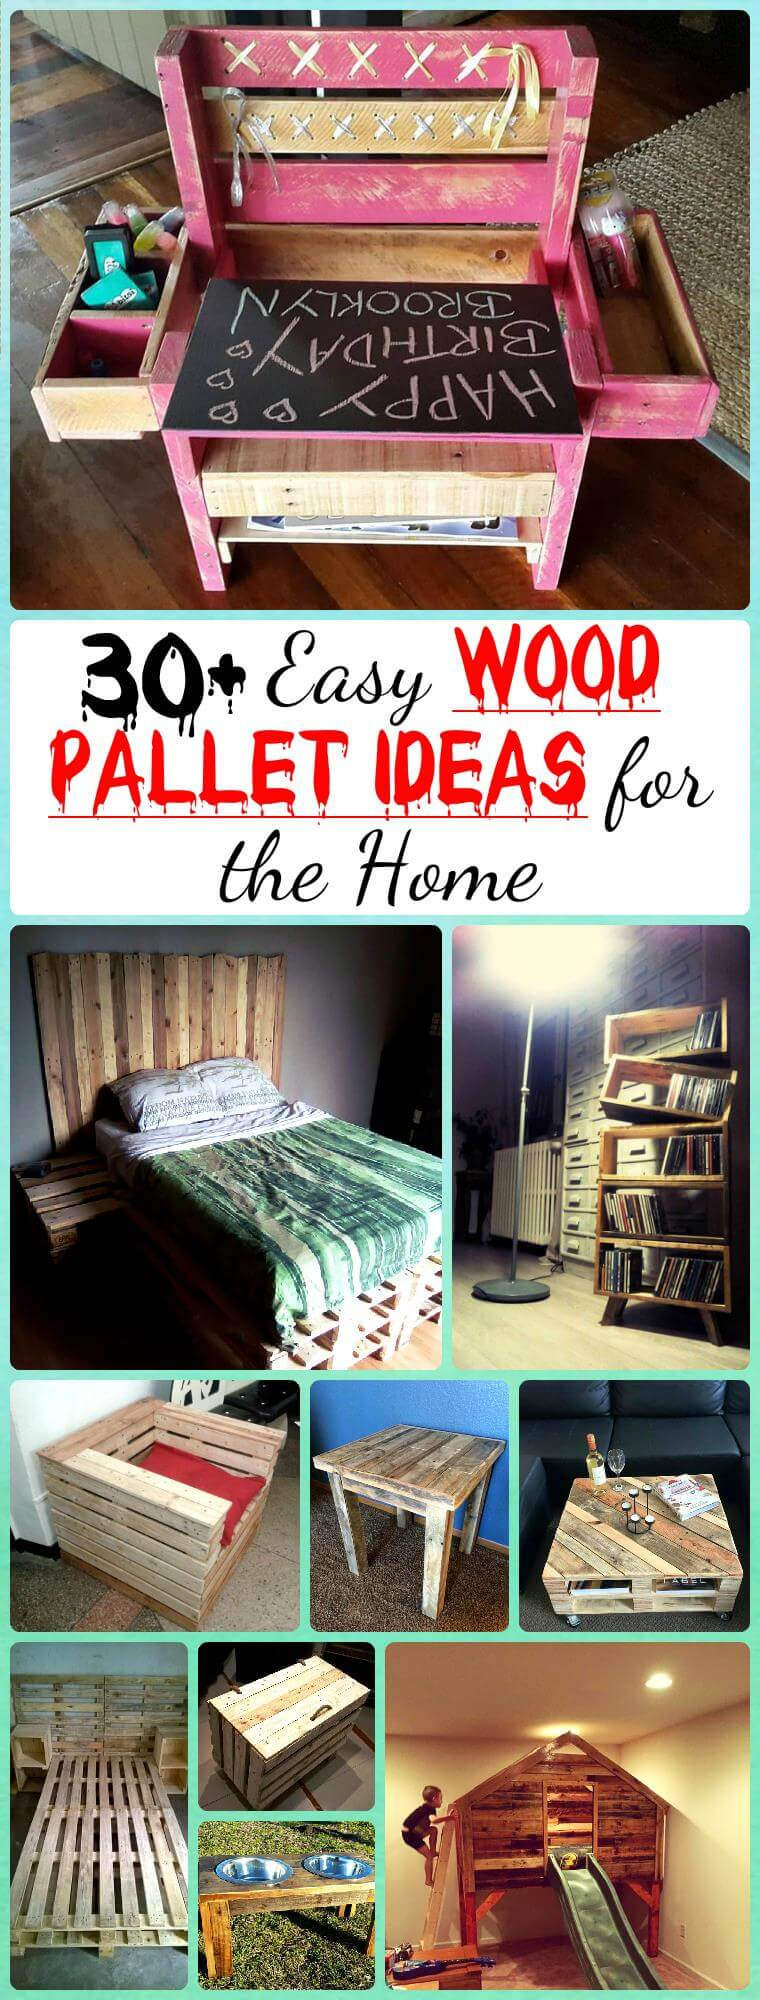 30 easy pallet ideas for the home pallet furniture diy. Black Bedroom Furniture Sets. Home Design Ideas